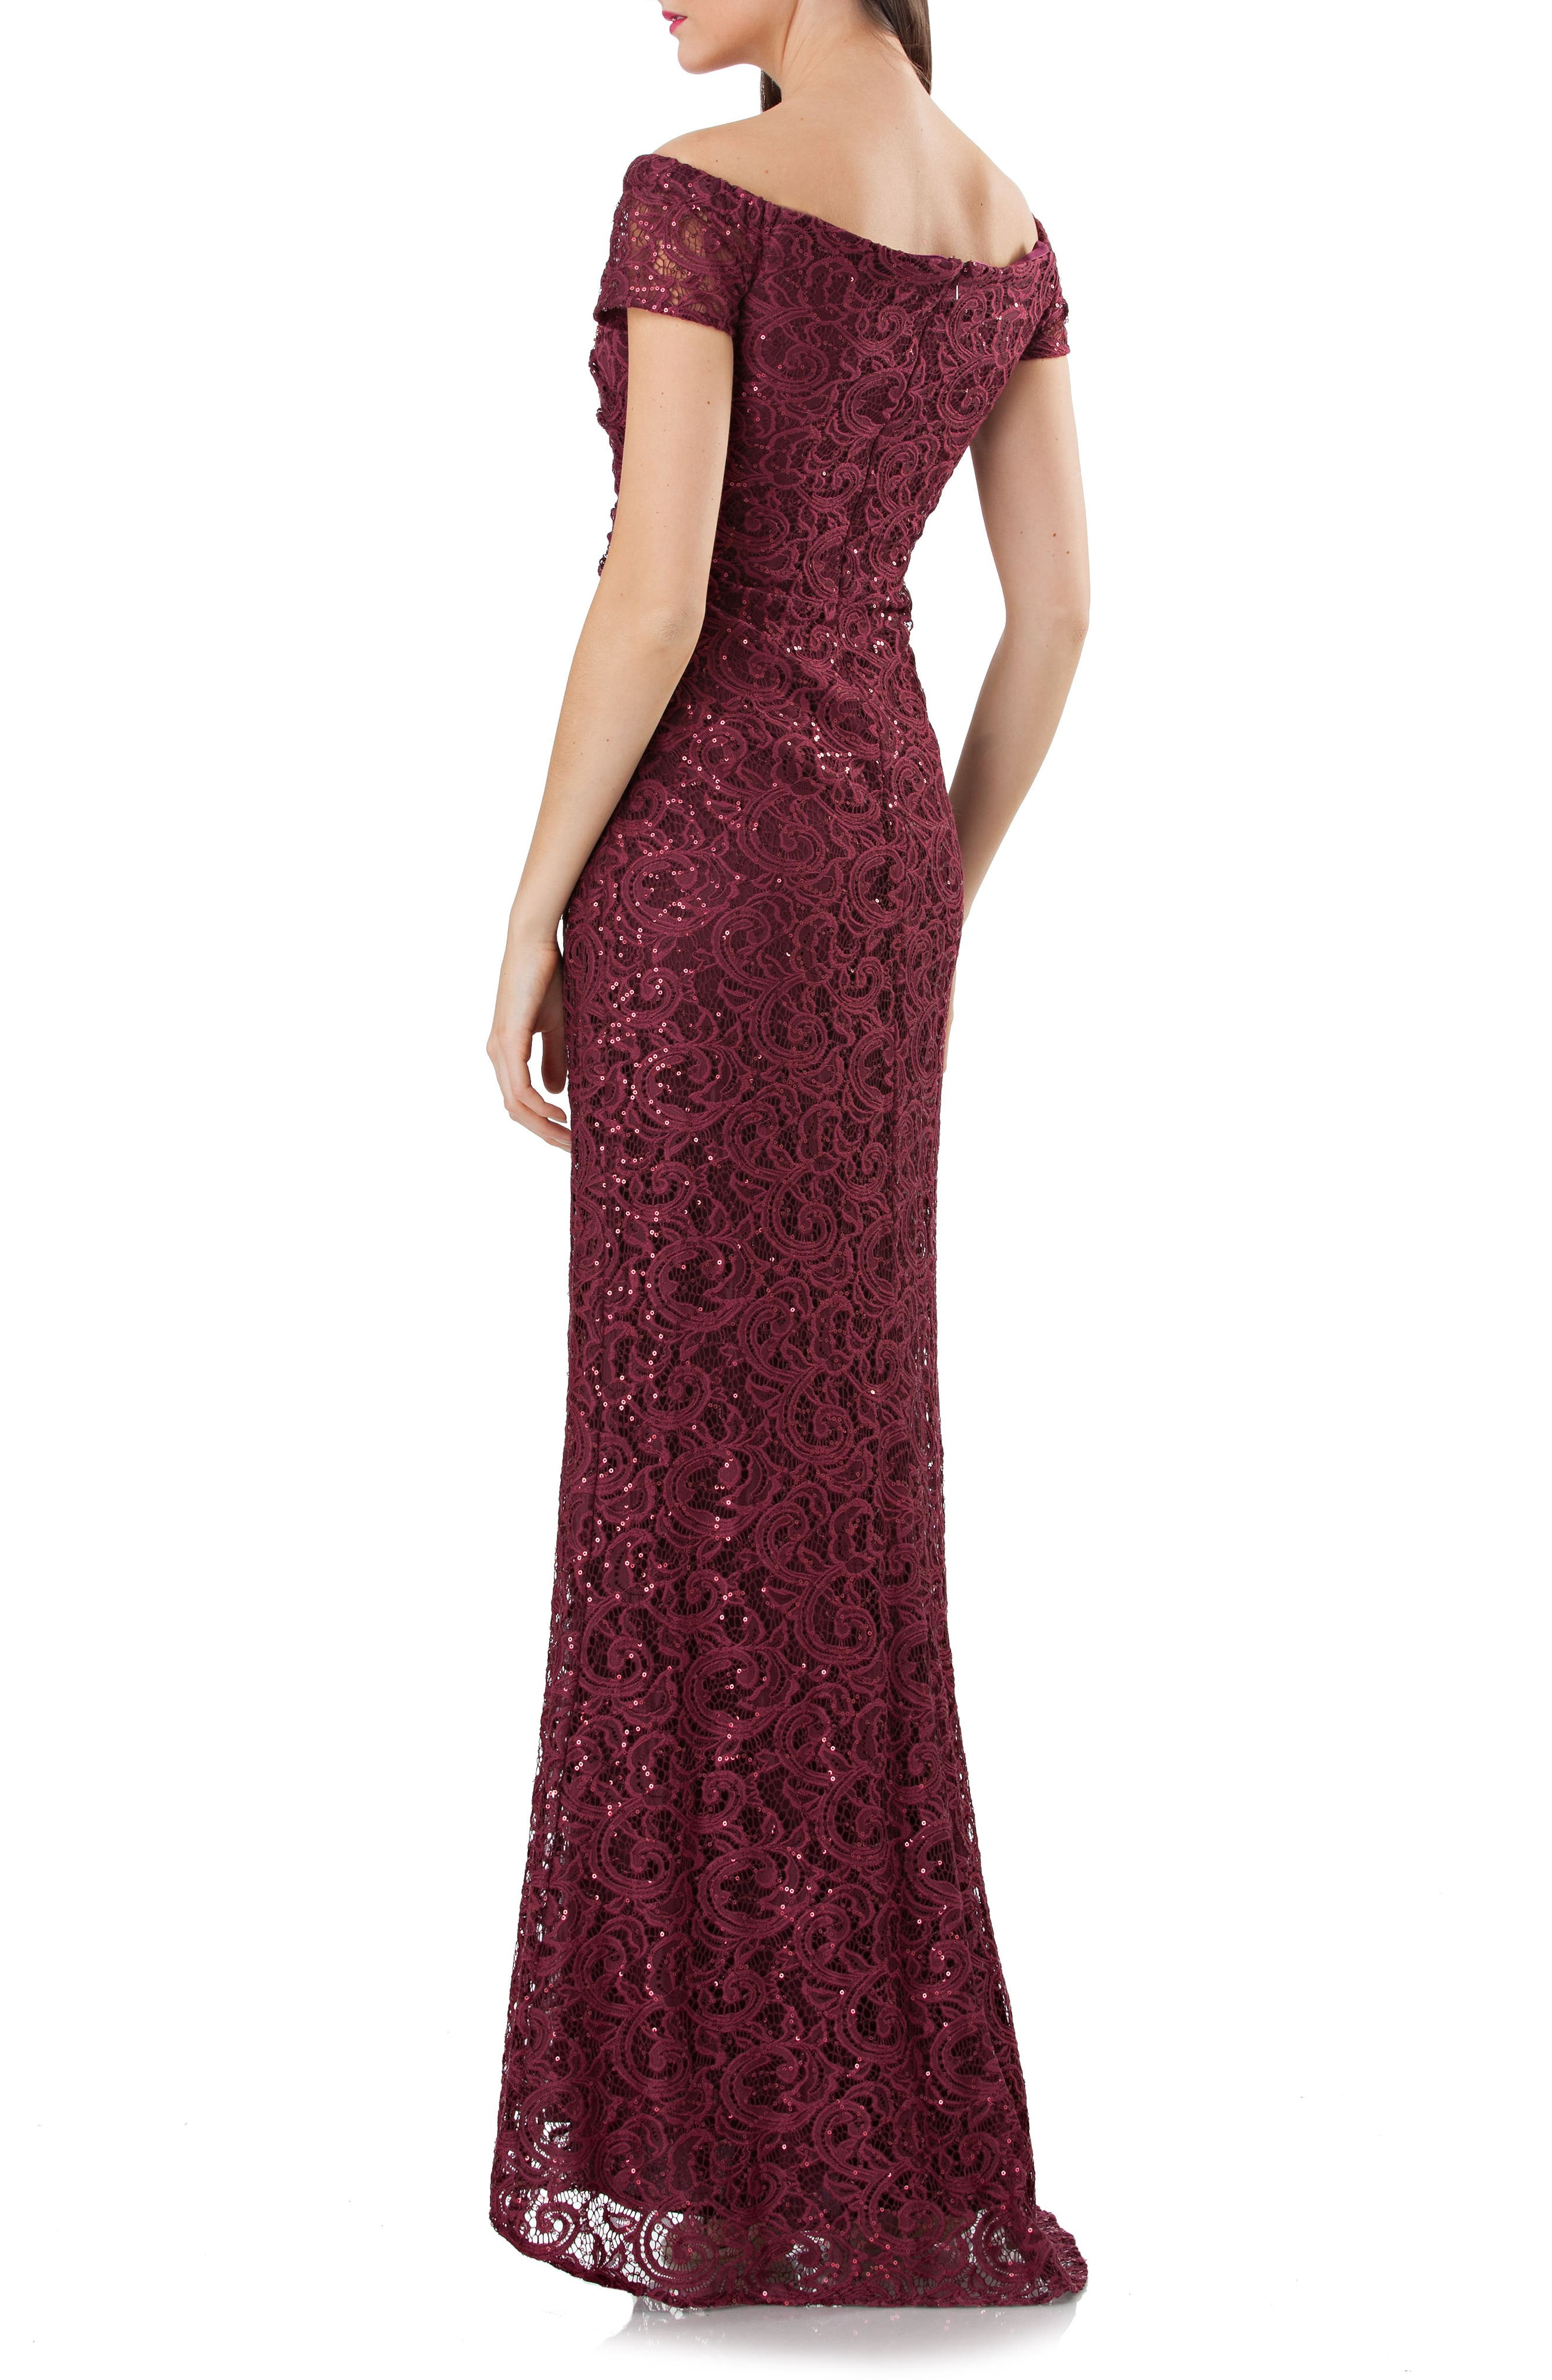 Alternate Image 2  - Carmen Marc Valvo Infusion Sequin Lace Off the Shoulder Mermaid Gown